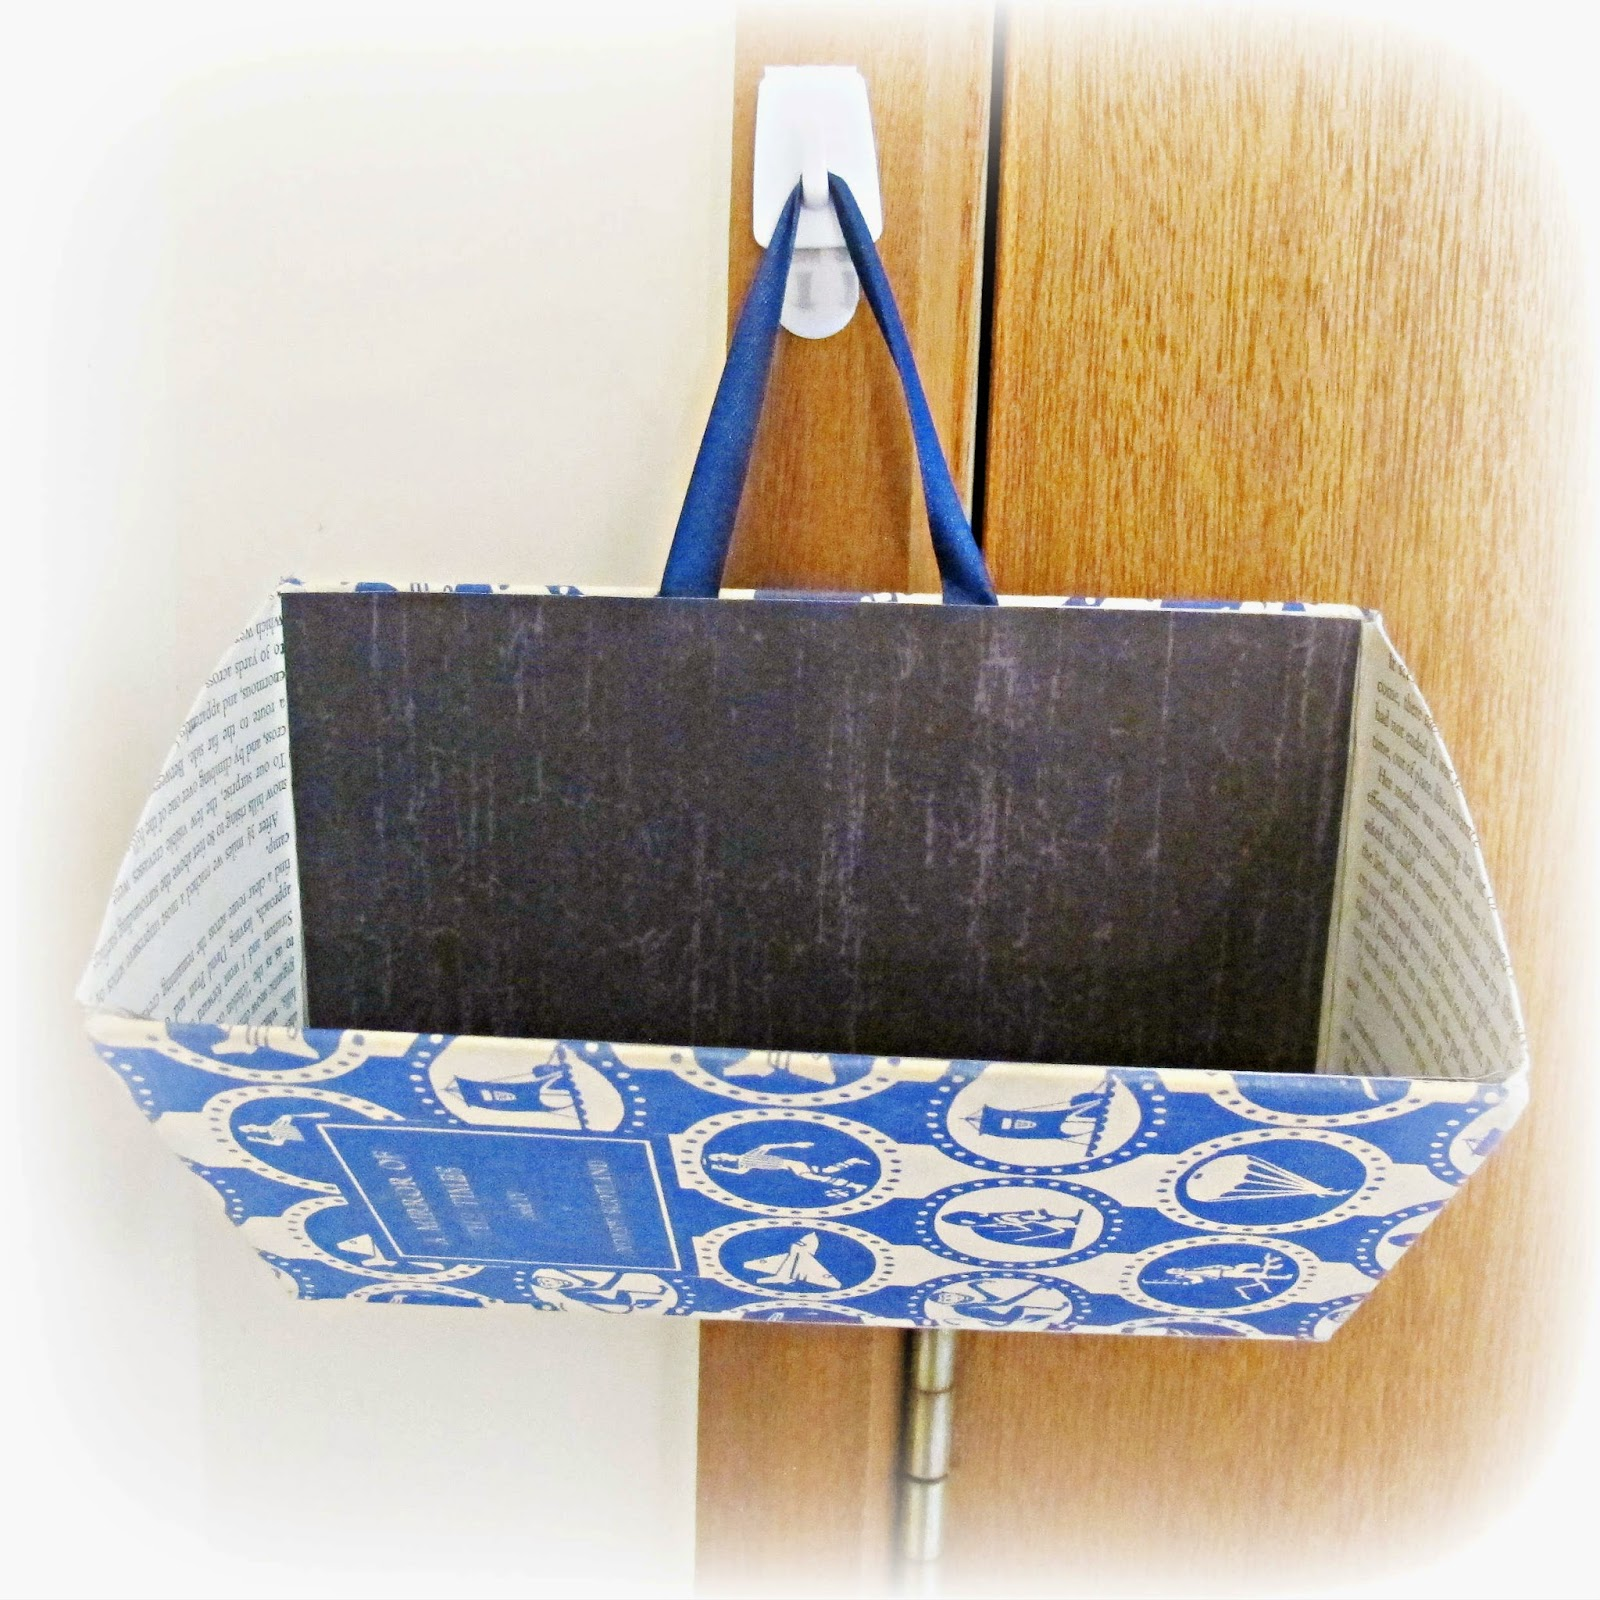 image wall pocket upcycled book caddy from kayte terry's paper made!